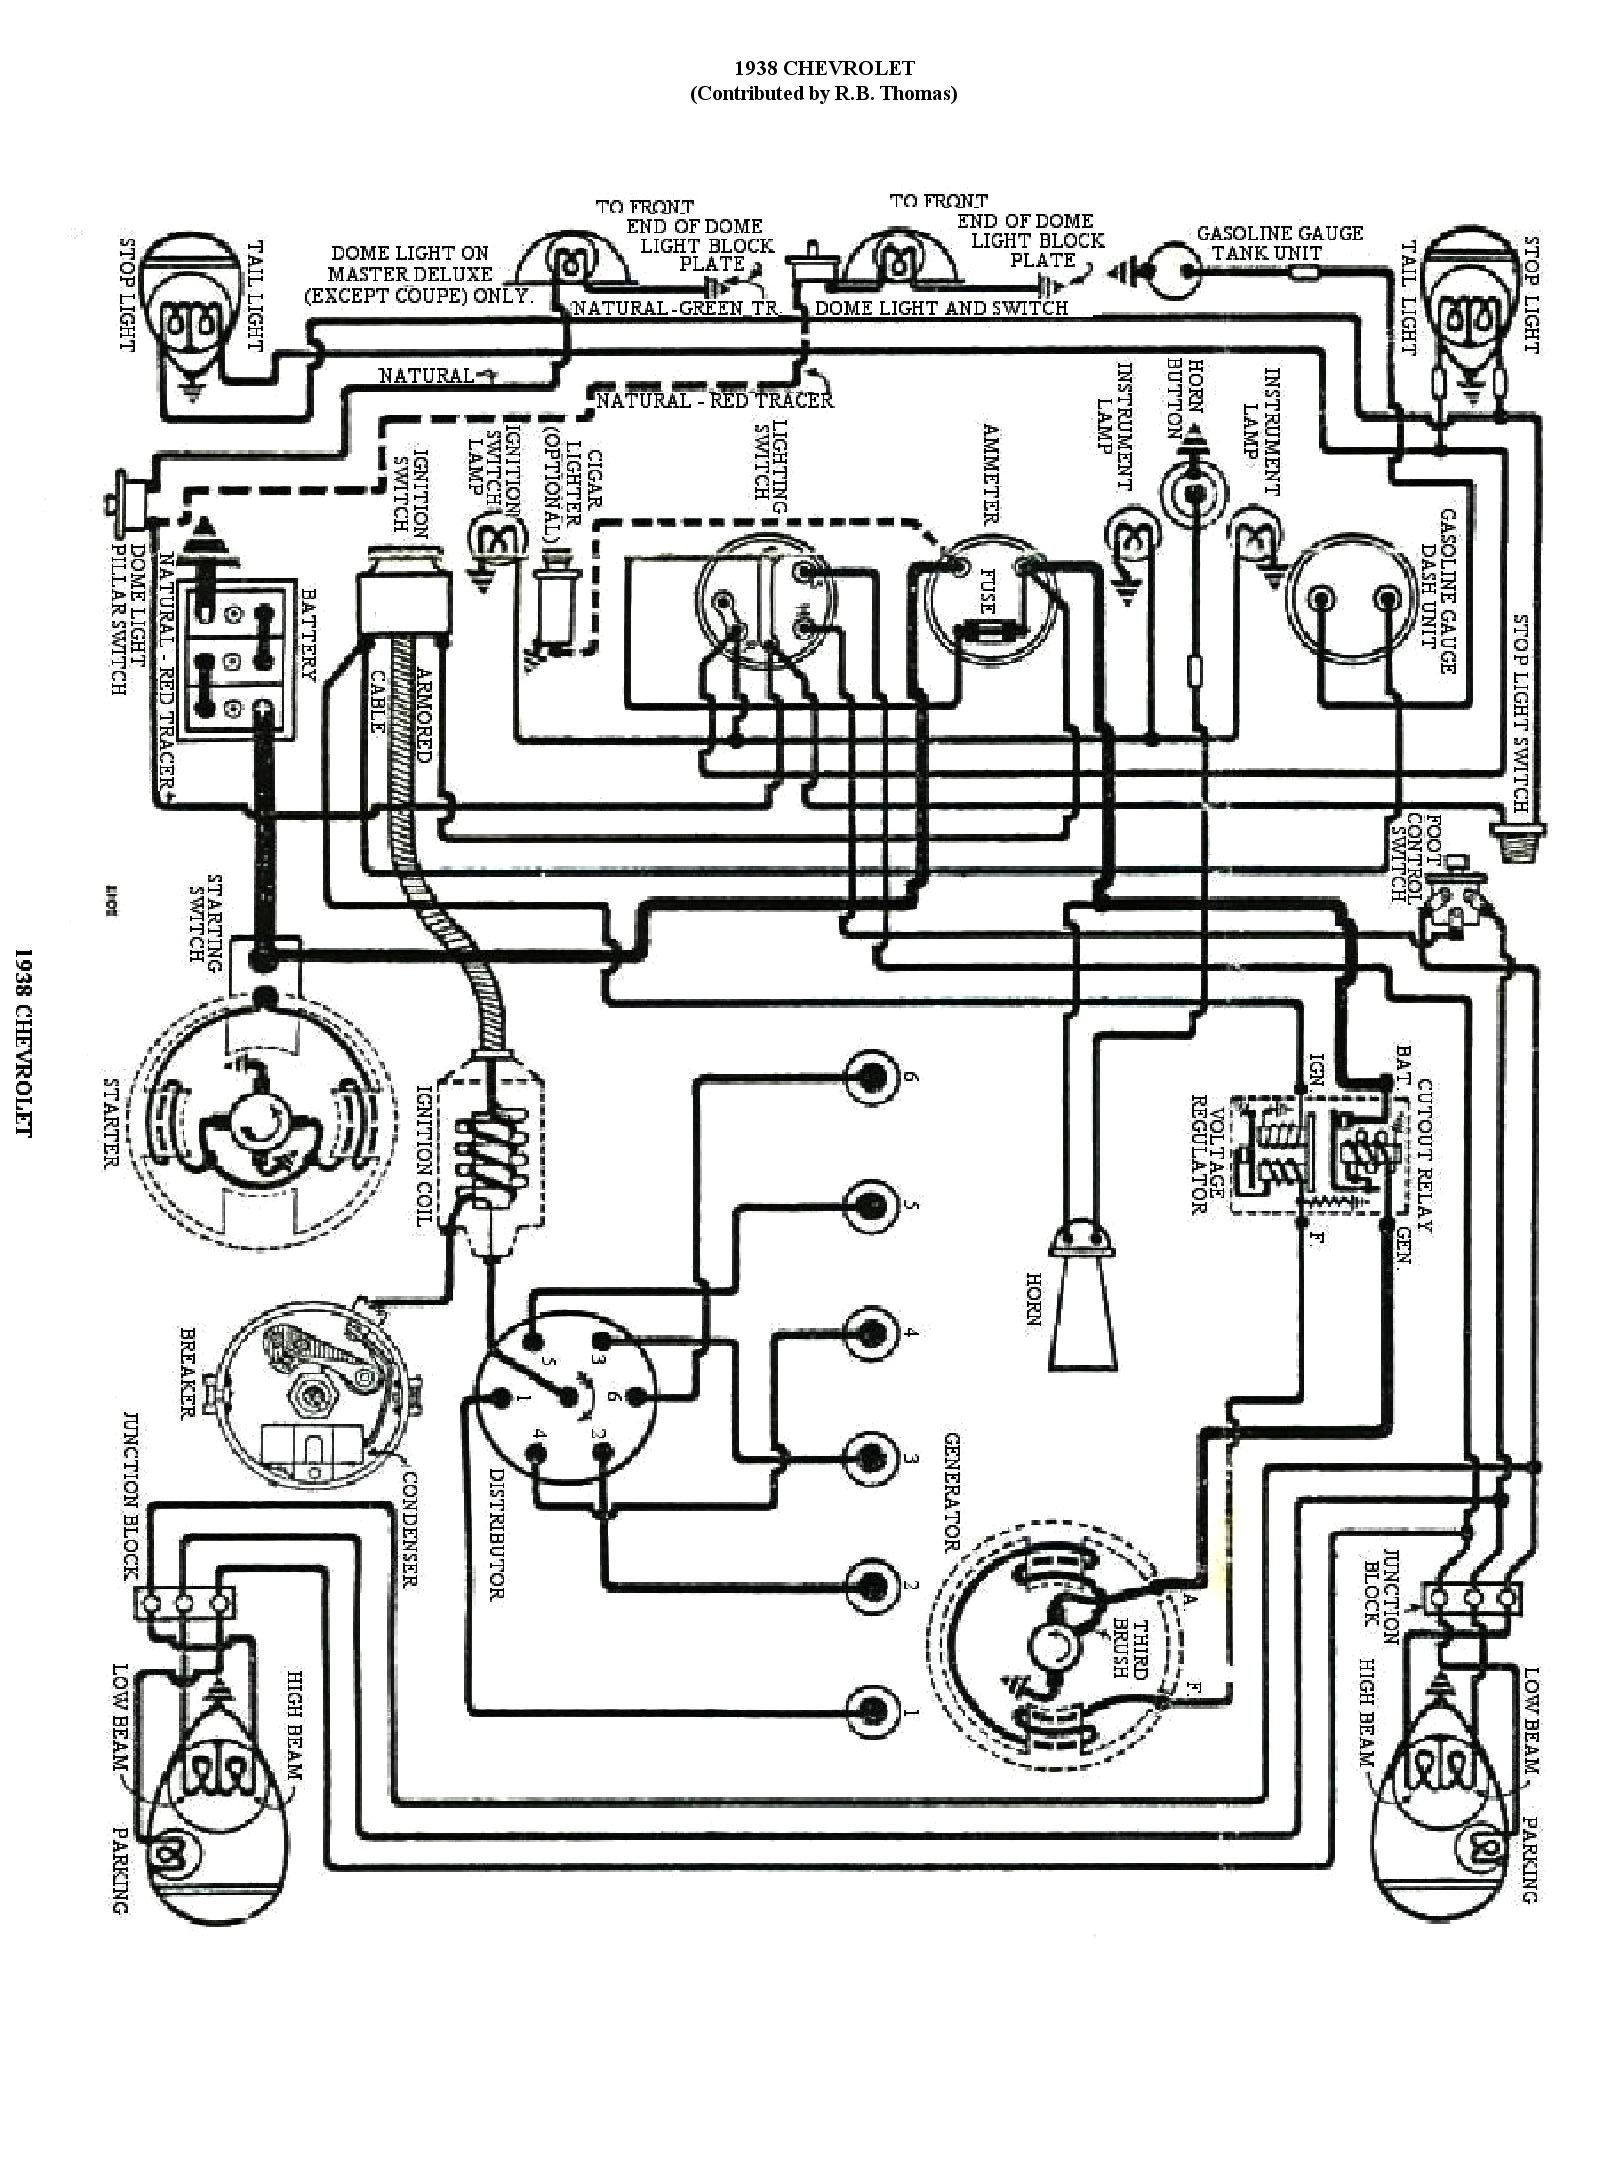 38wiring chevy wiring diagrams chevrolet volt wiring diagram at suagrazia.org